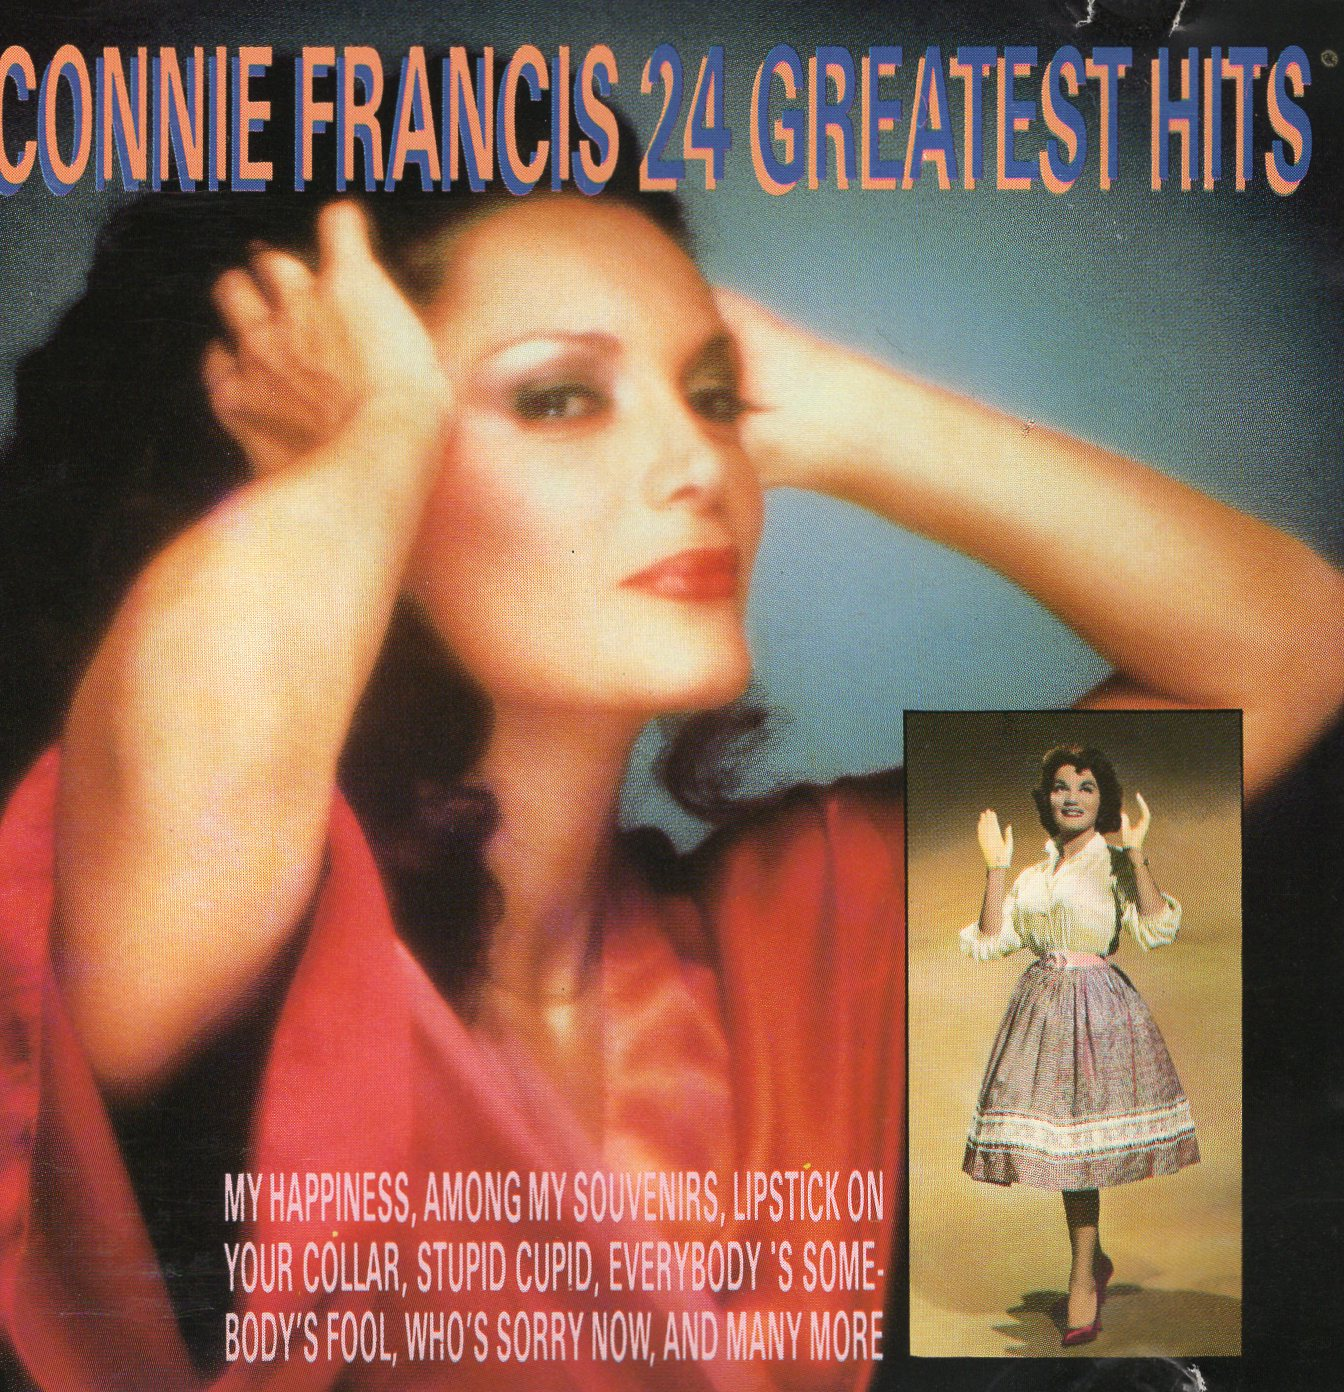 """Connie Francis 24 Greatest Hits"" Connie Francis"